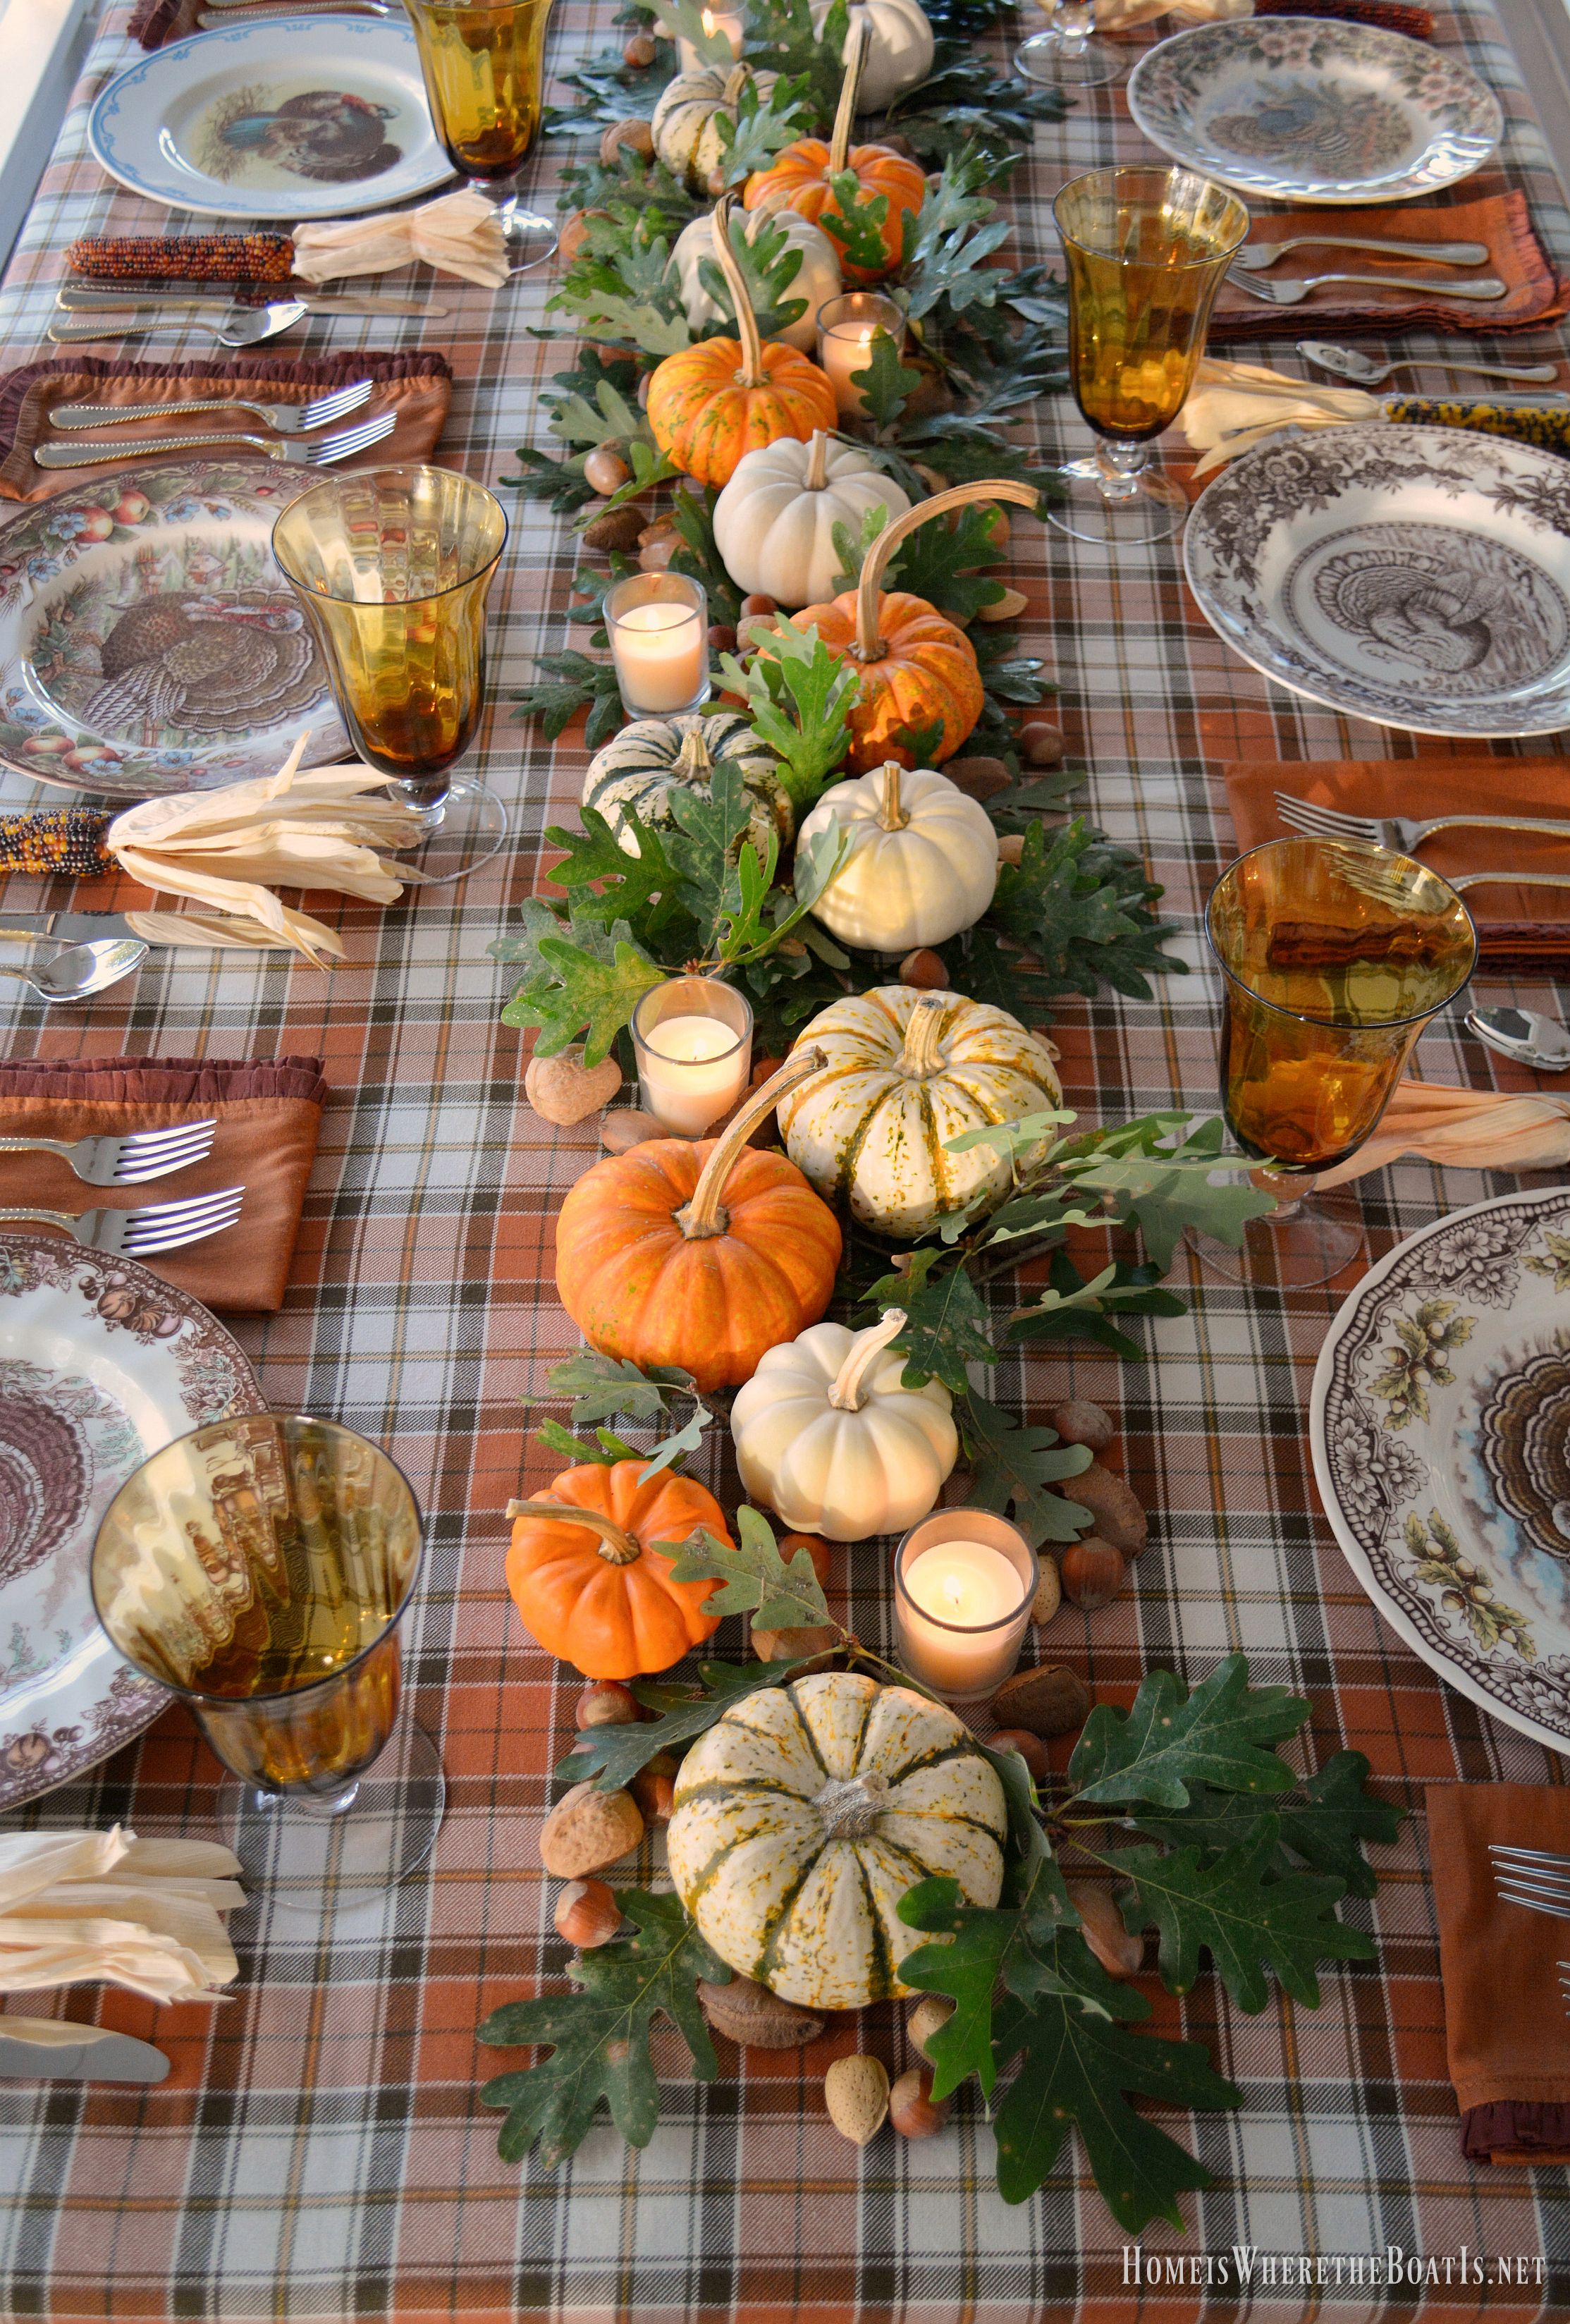 Thanksgiving is just two weeks away and I pulled out the turkey plates in anticipation! & A Thanksgiving Table with Turkey Plates Plaid and Pumpkin-Oak Leaf ...